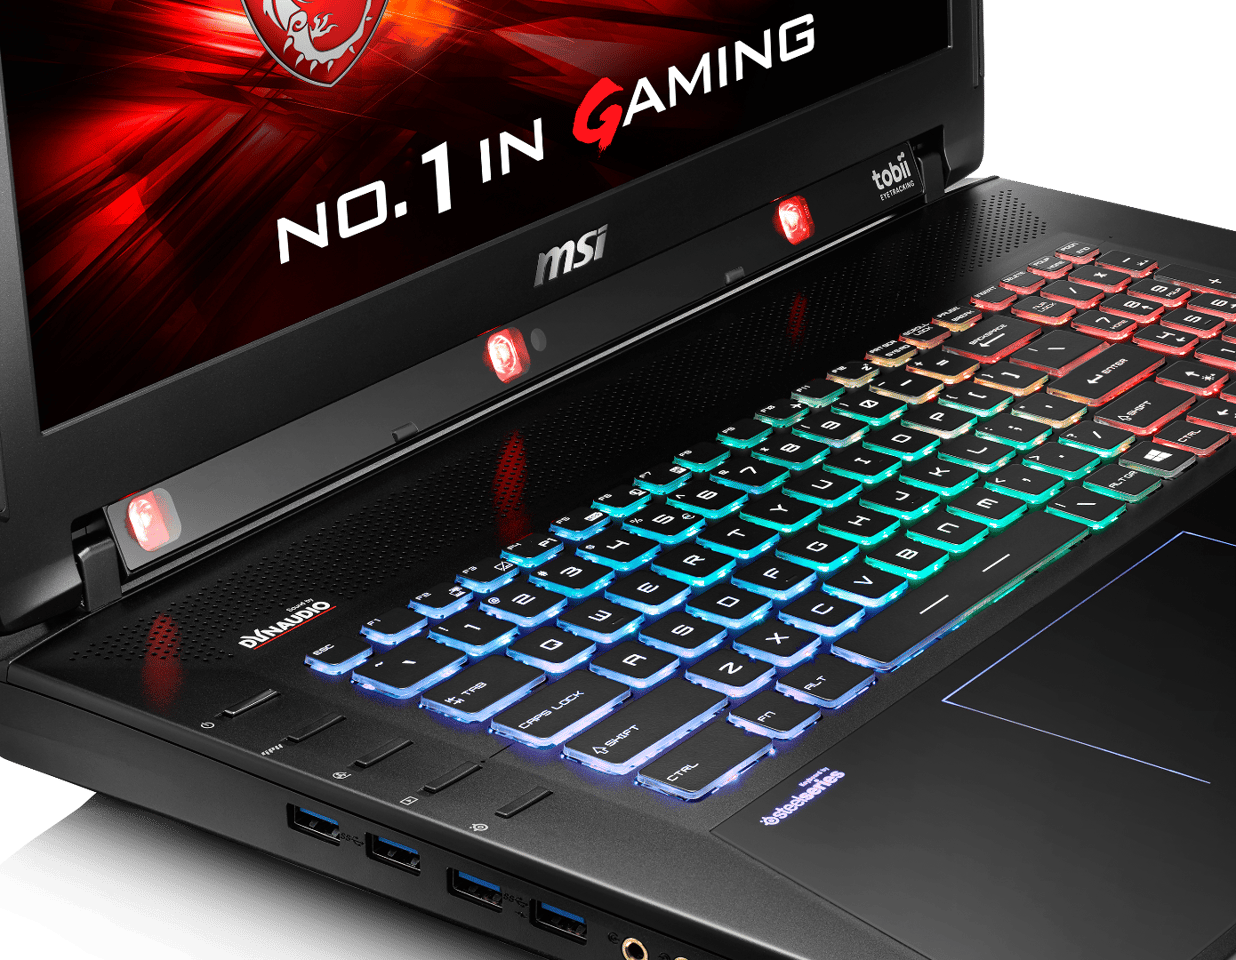 The MSI GT72S G Tobii also features a full-color backlit SteelSeries keyboard for quick response and tactile feedback